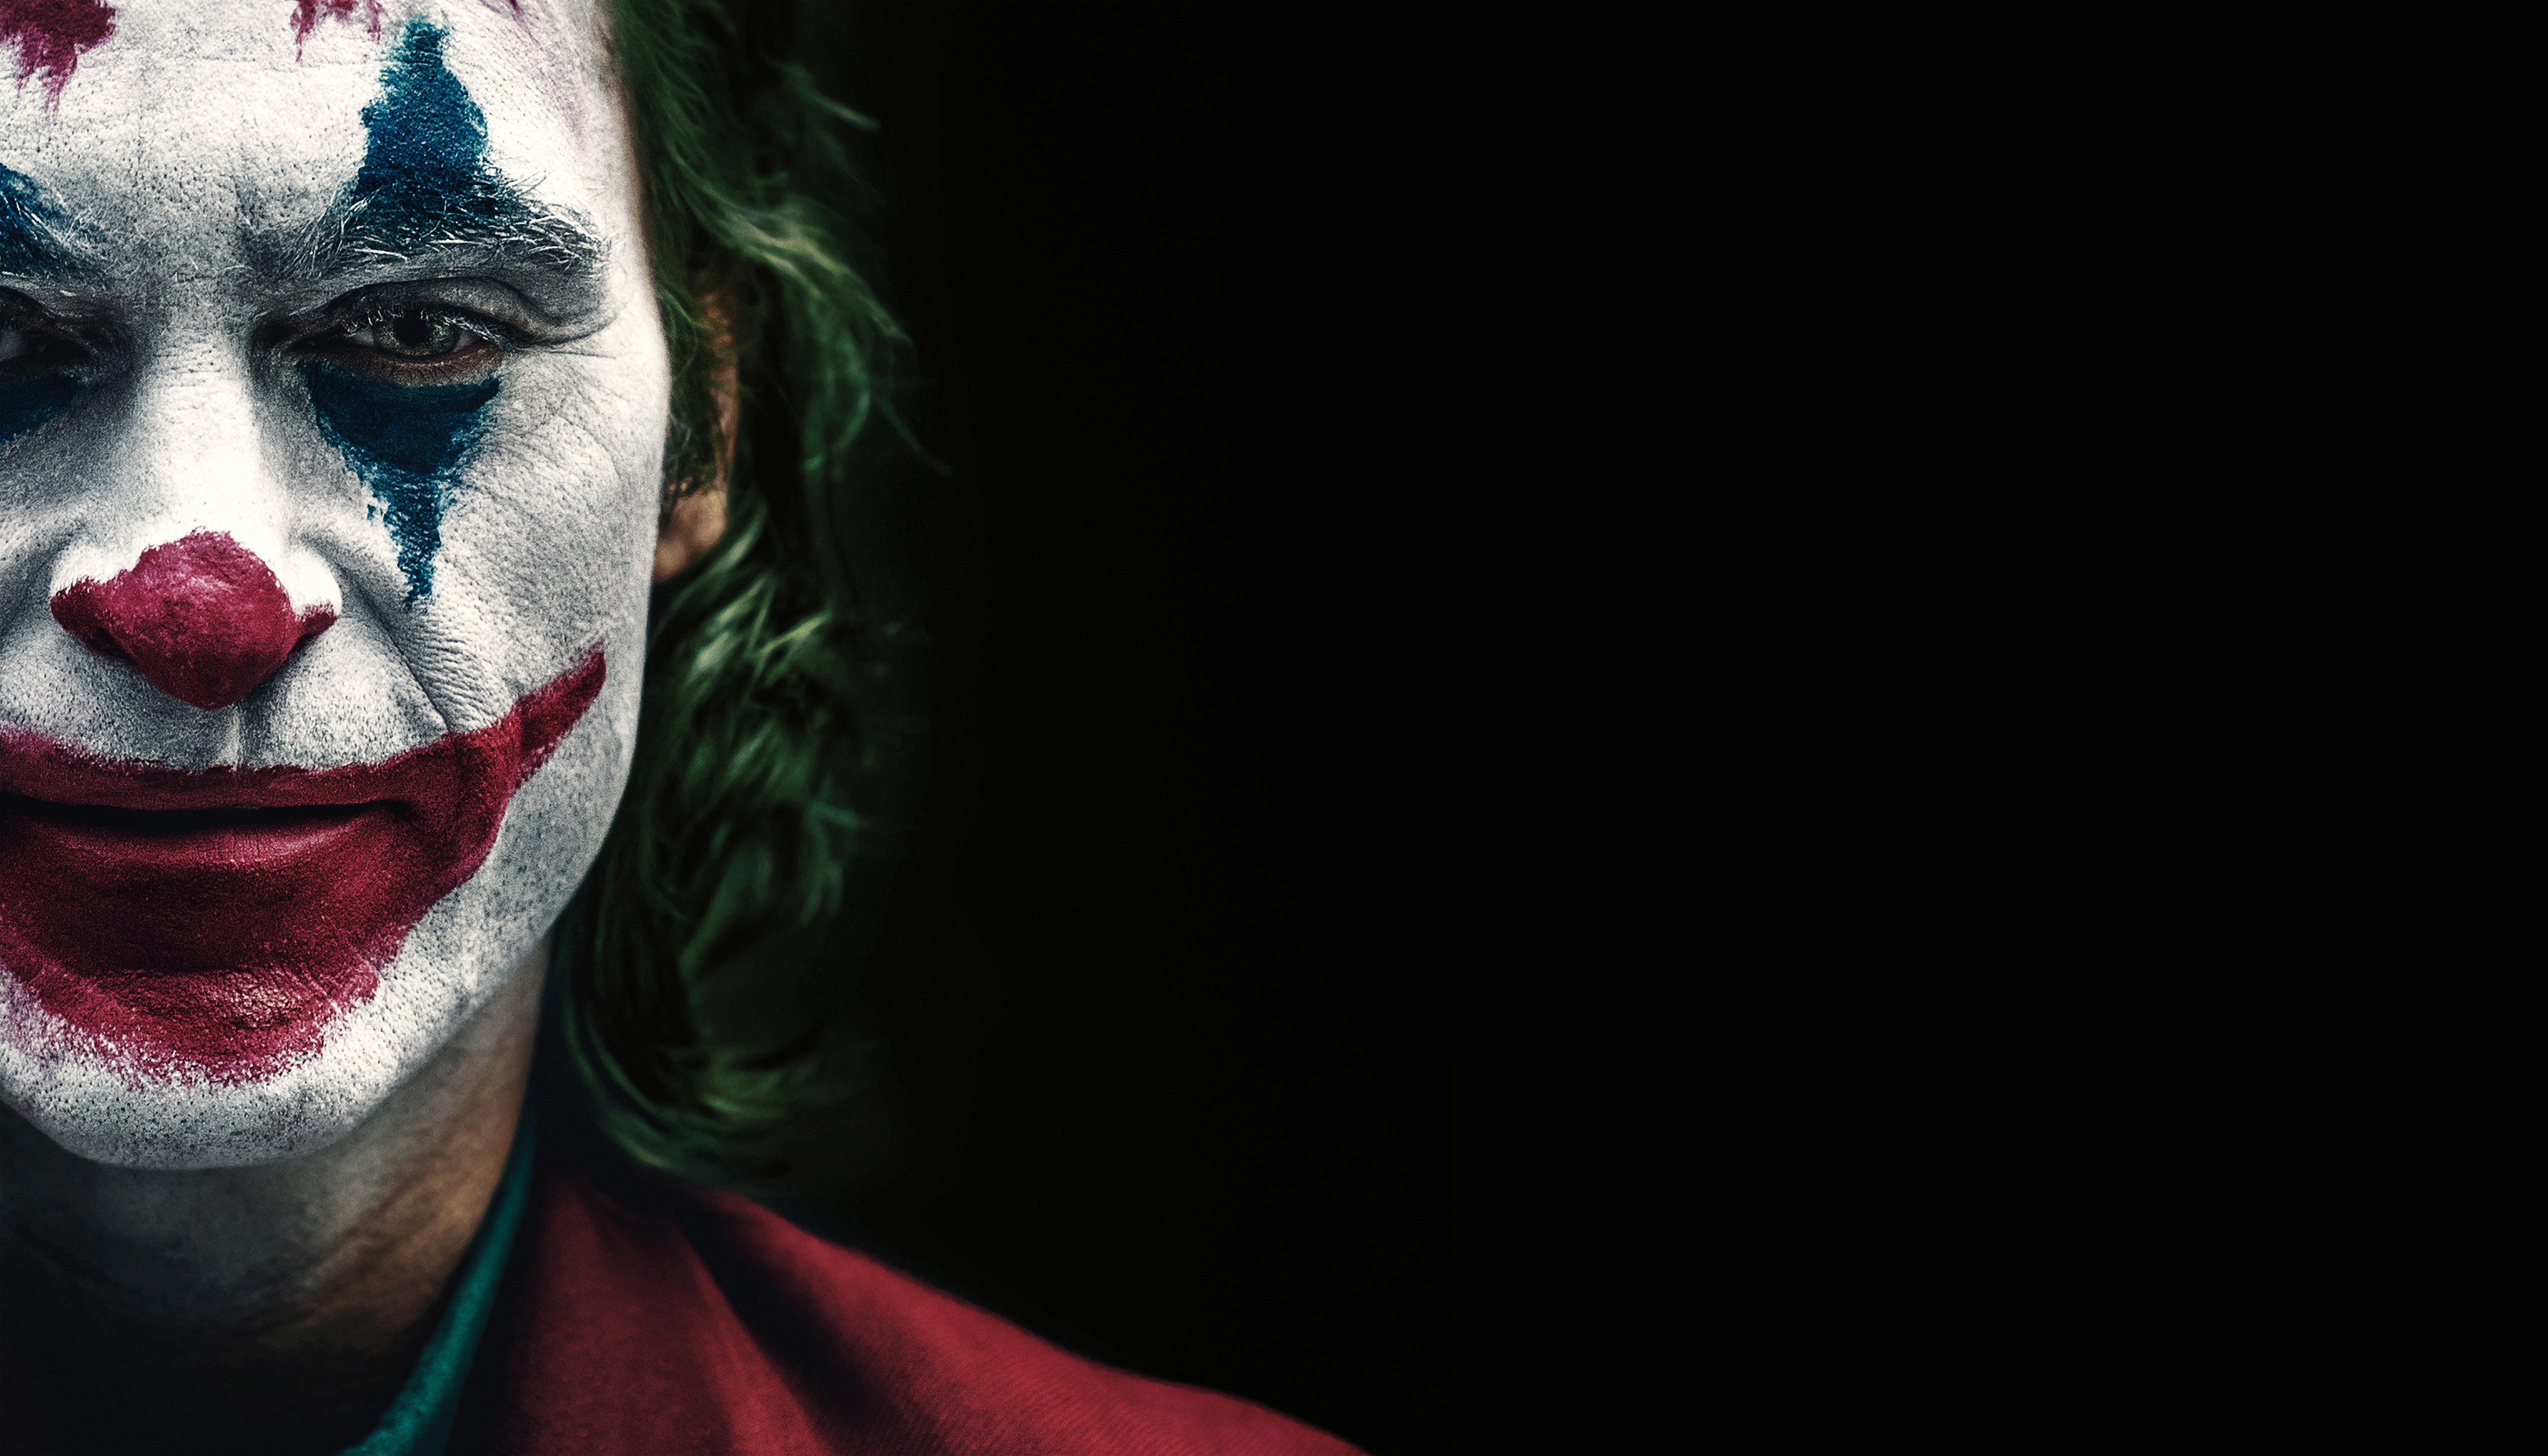 Joker 8k Wallpapers Top Free Joker 8k Backgrounds Wallpaperaccess